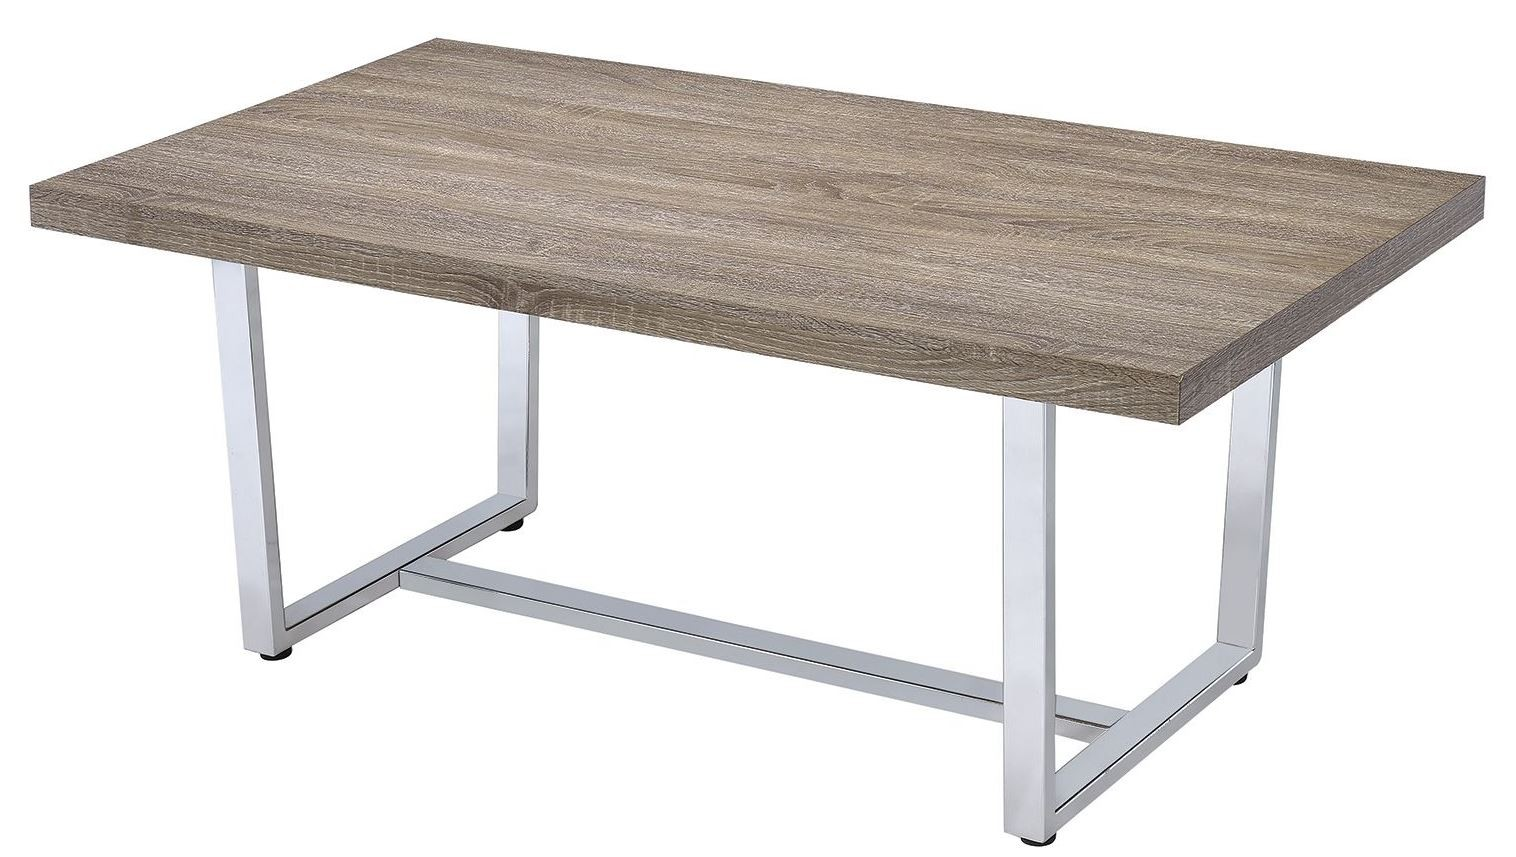 Weathered Taupe Coffee Table From Coaster 704188 Coleman Furniture